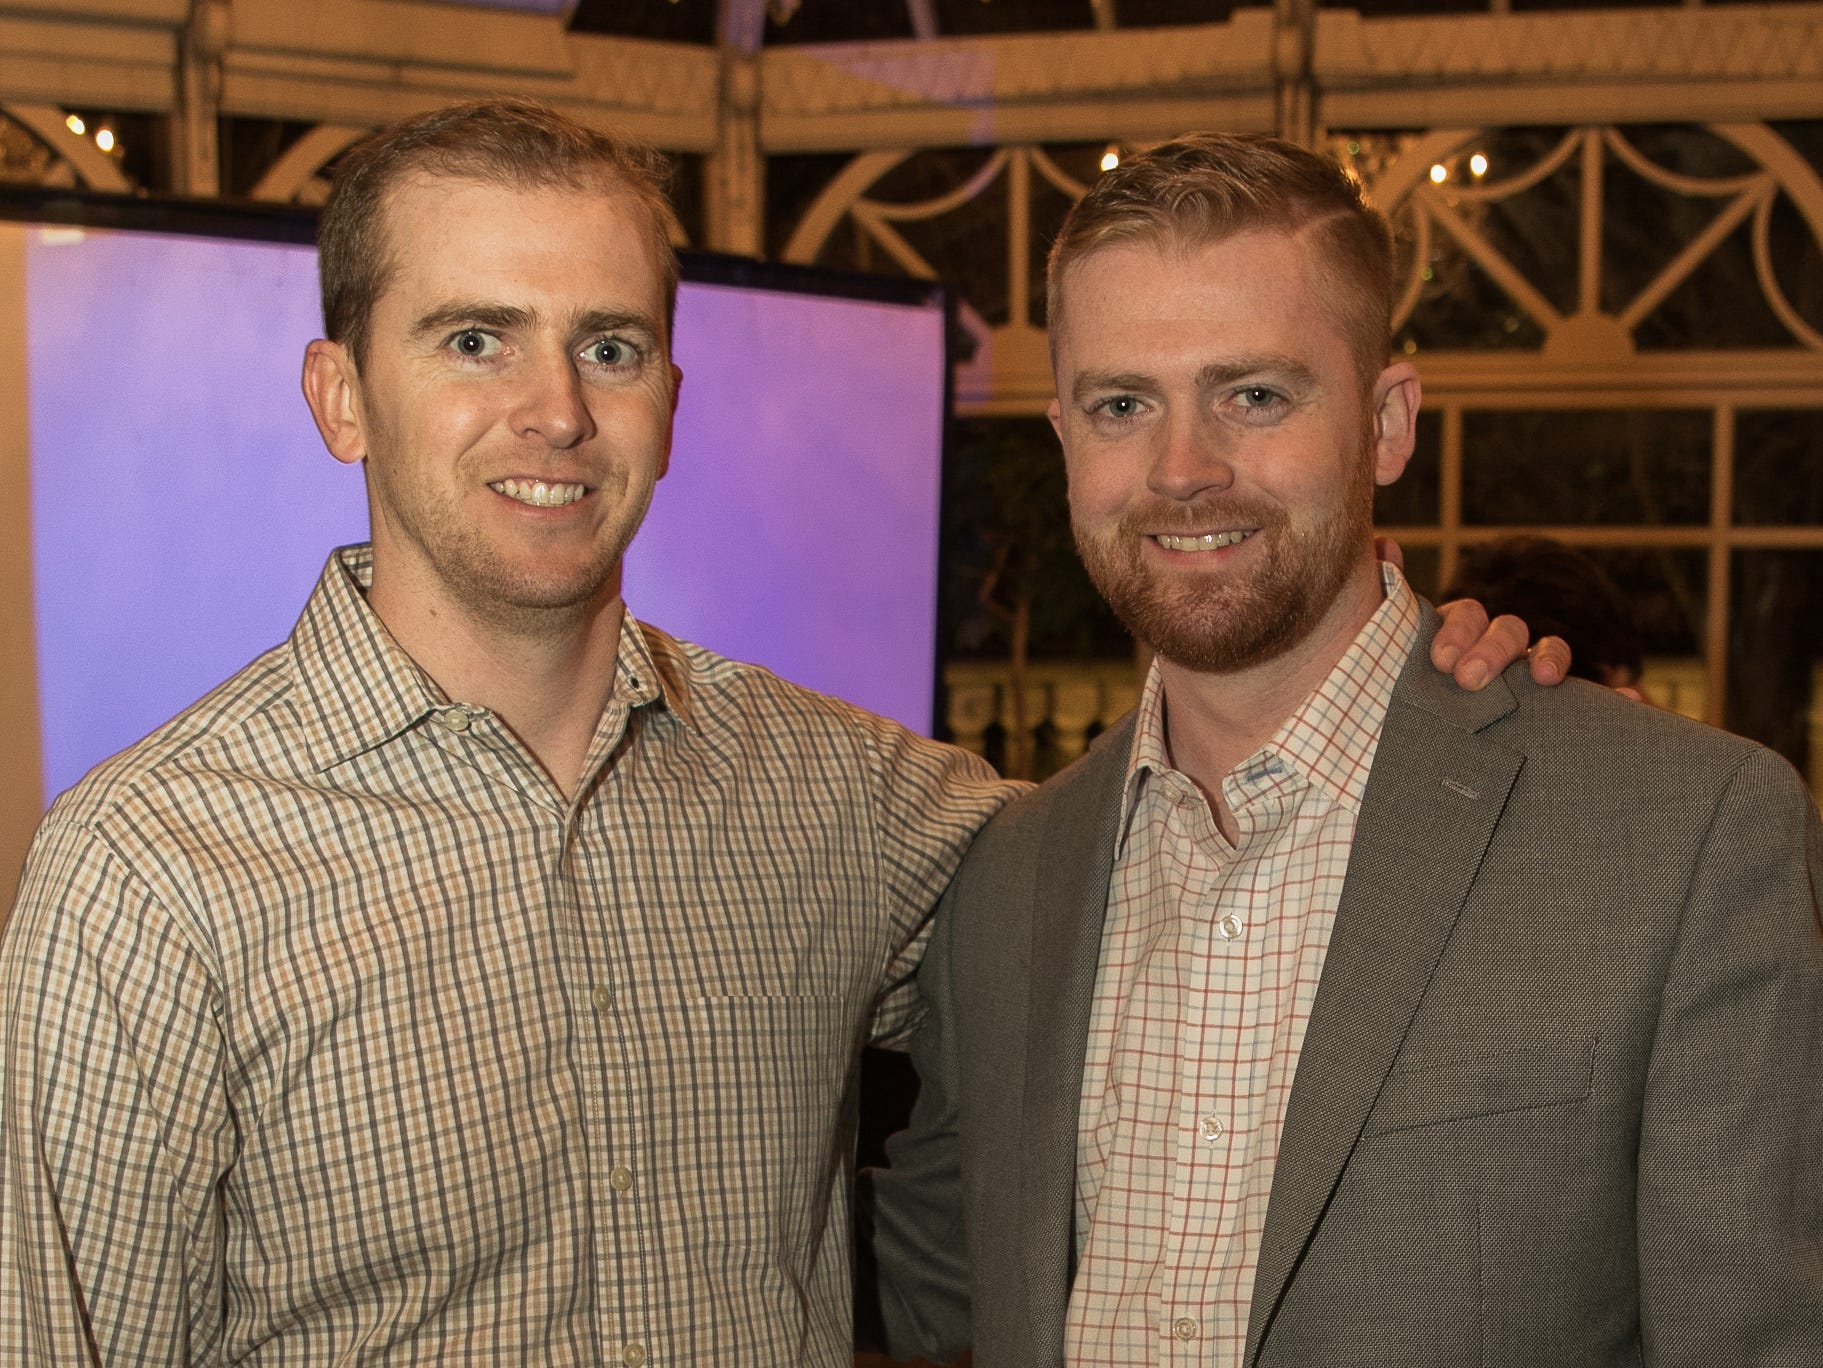 Kevin and Sean Cochran. Rebuilding Together North Jersey held its third annual Beefsteak Dinner with former NY Giants Howard Cross, Amani Toomer, and Sam Garnes at the Brownstone in Paterson. 03/07/2019